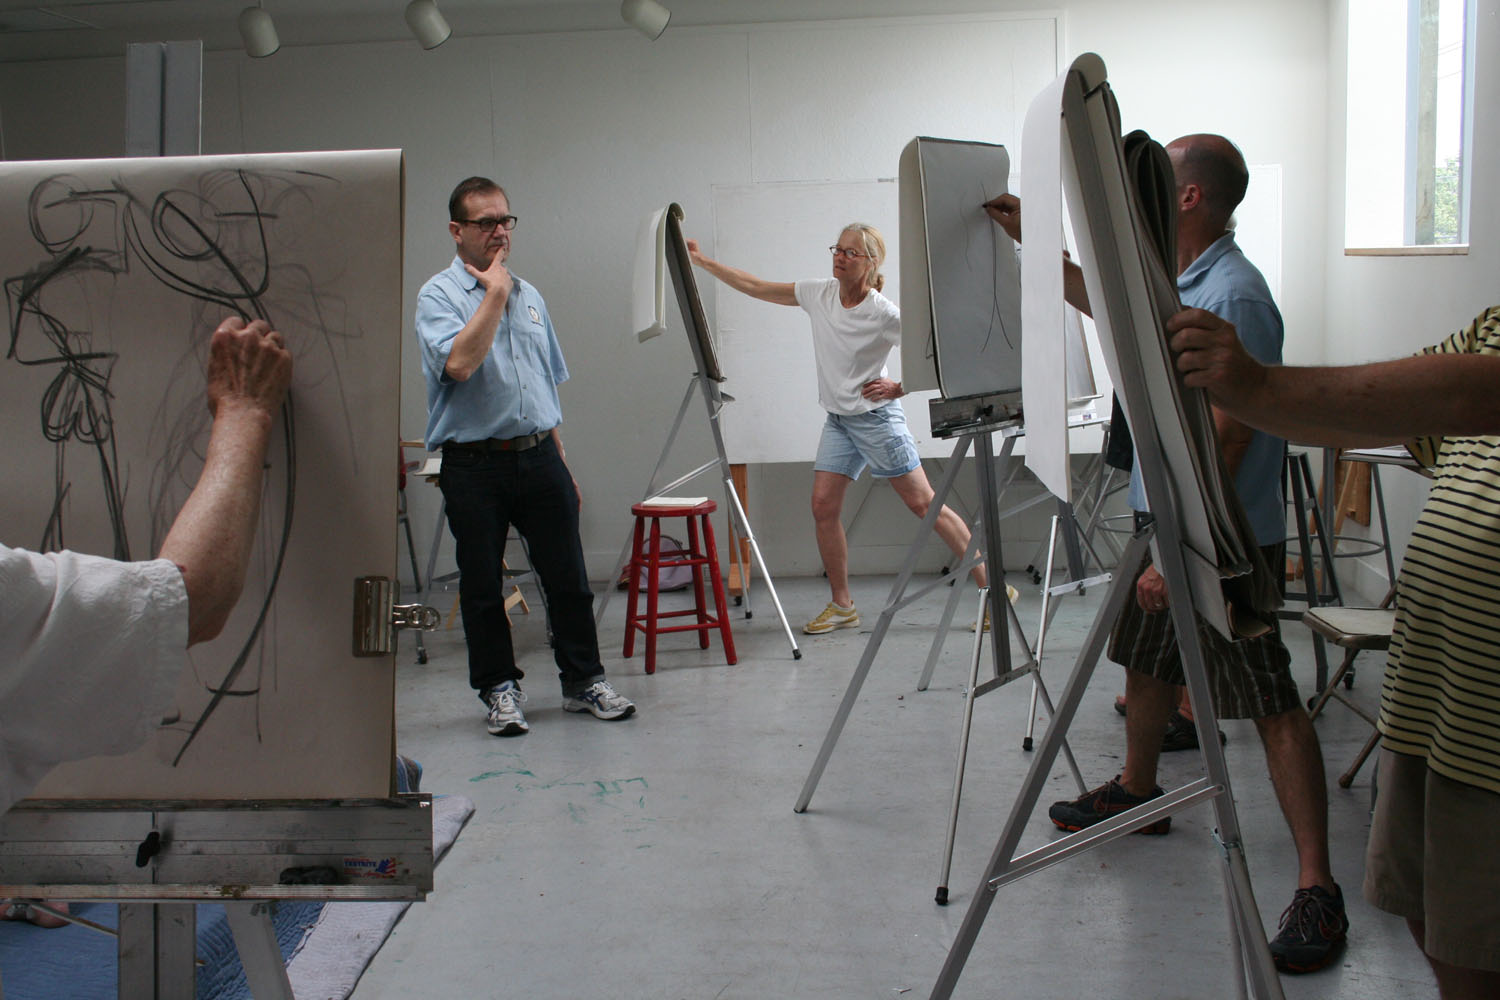 Male Life Drawing Models